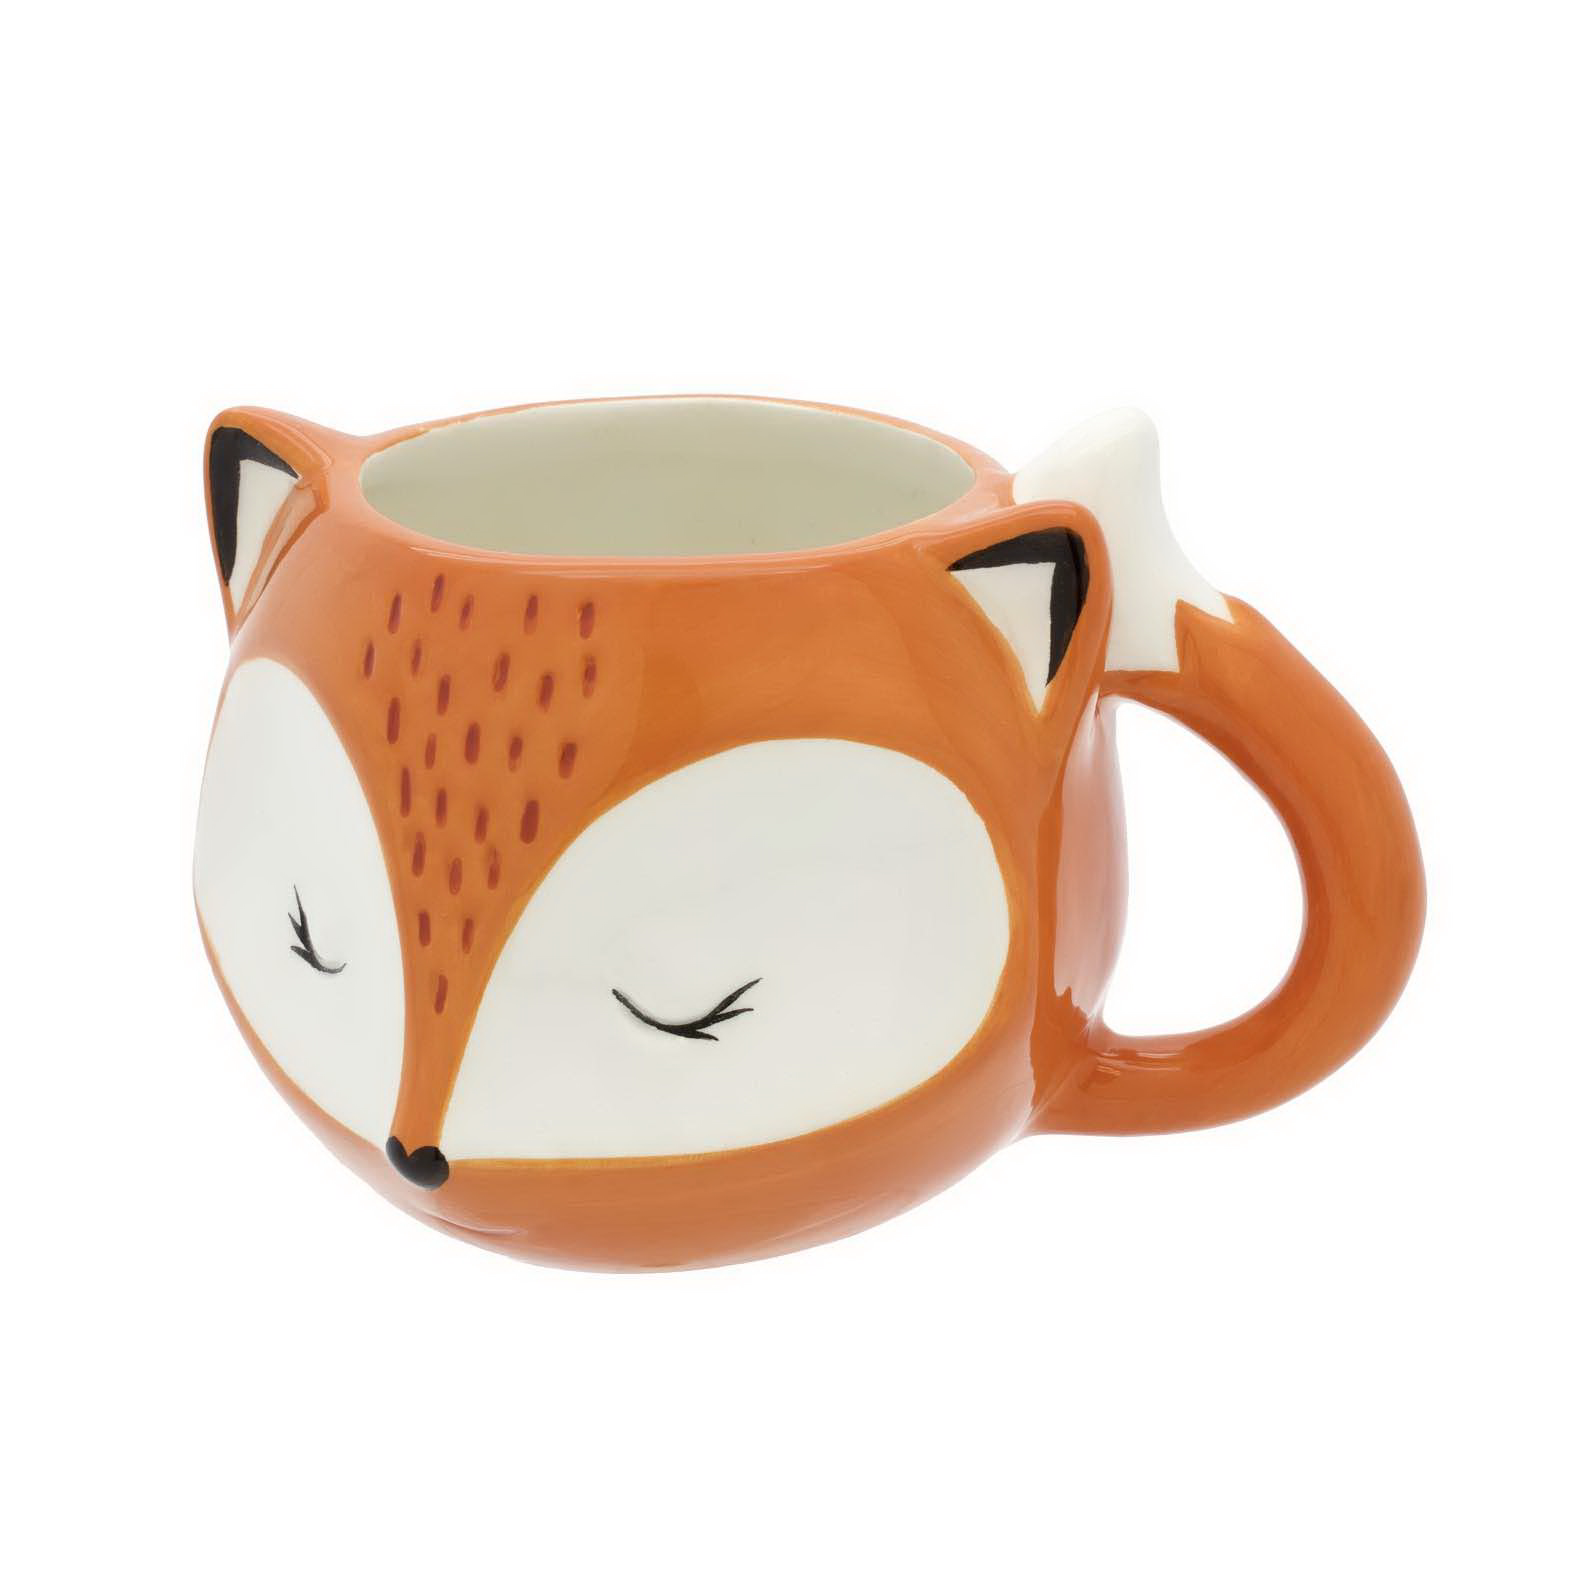 Kawaii Mug Kids Snack Cups Fox Coffee Mug Porcelain Creative Kids Drinking Cup 3d Fox Coffee Mugs For Sale Buy 3d Mugs For Kids 3d Animal Mug 3d Mug Product On Alibaba Com